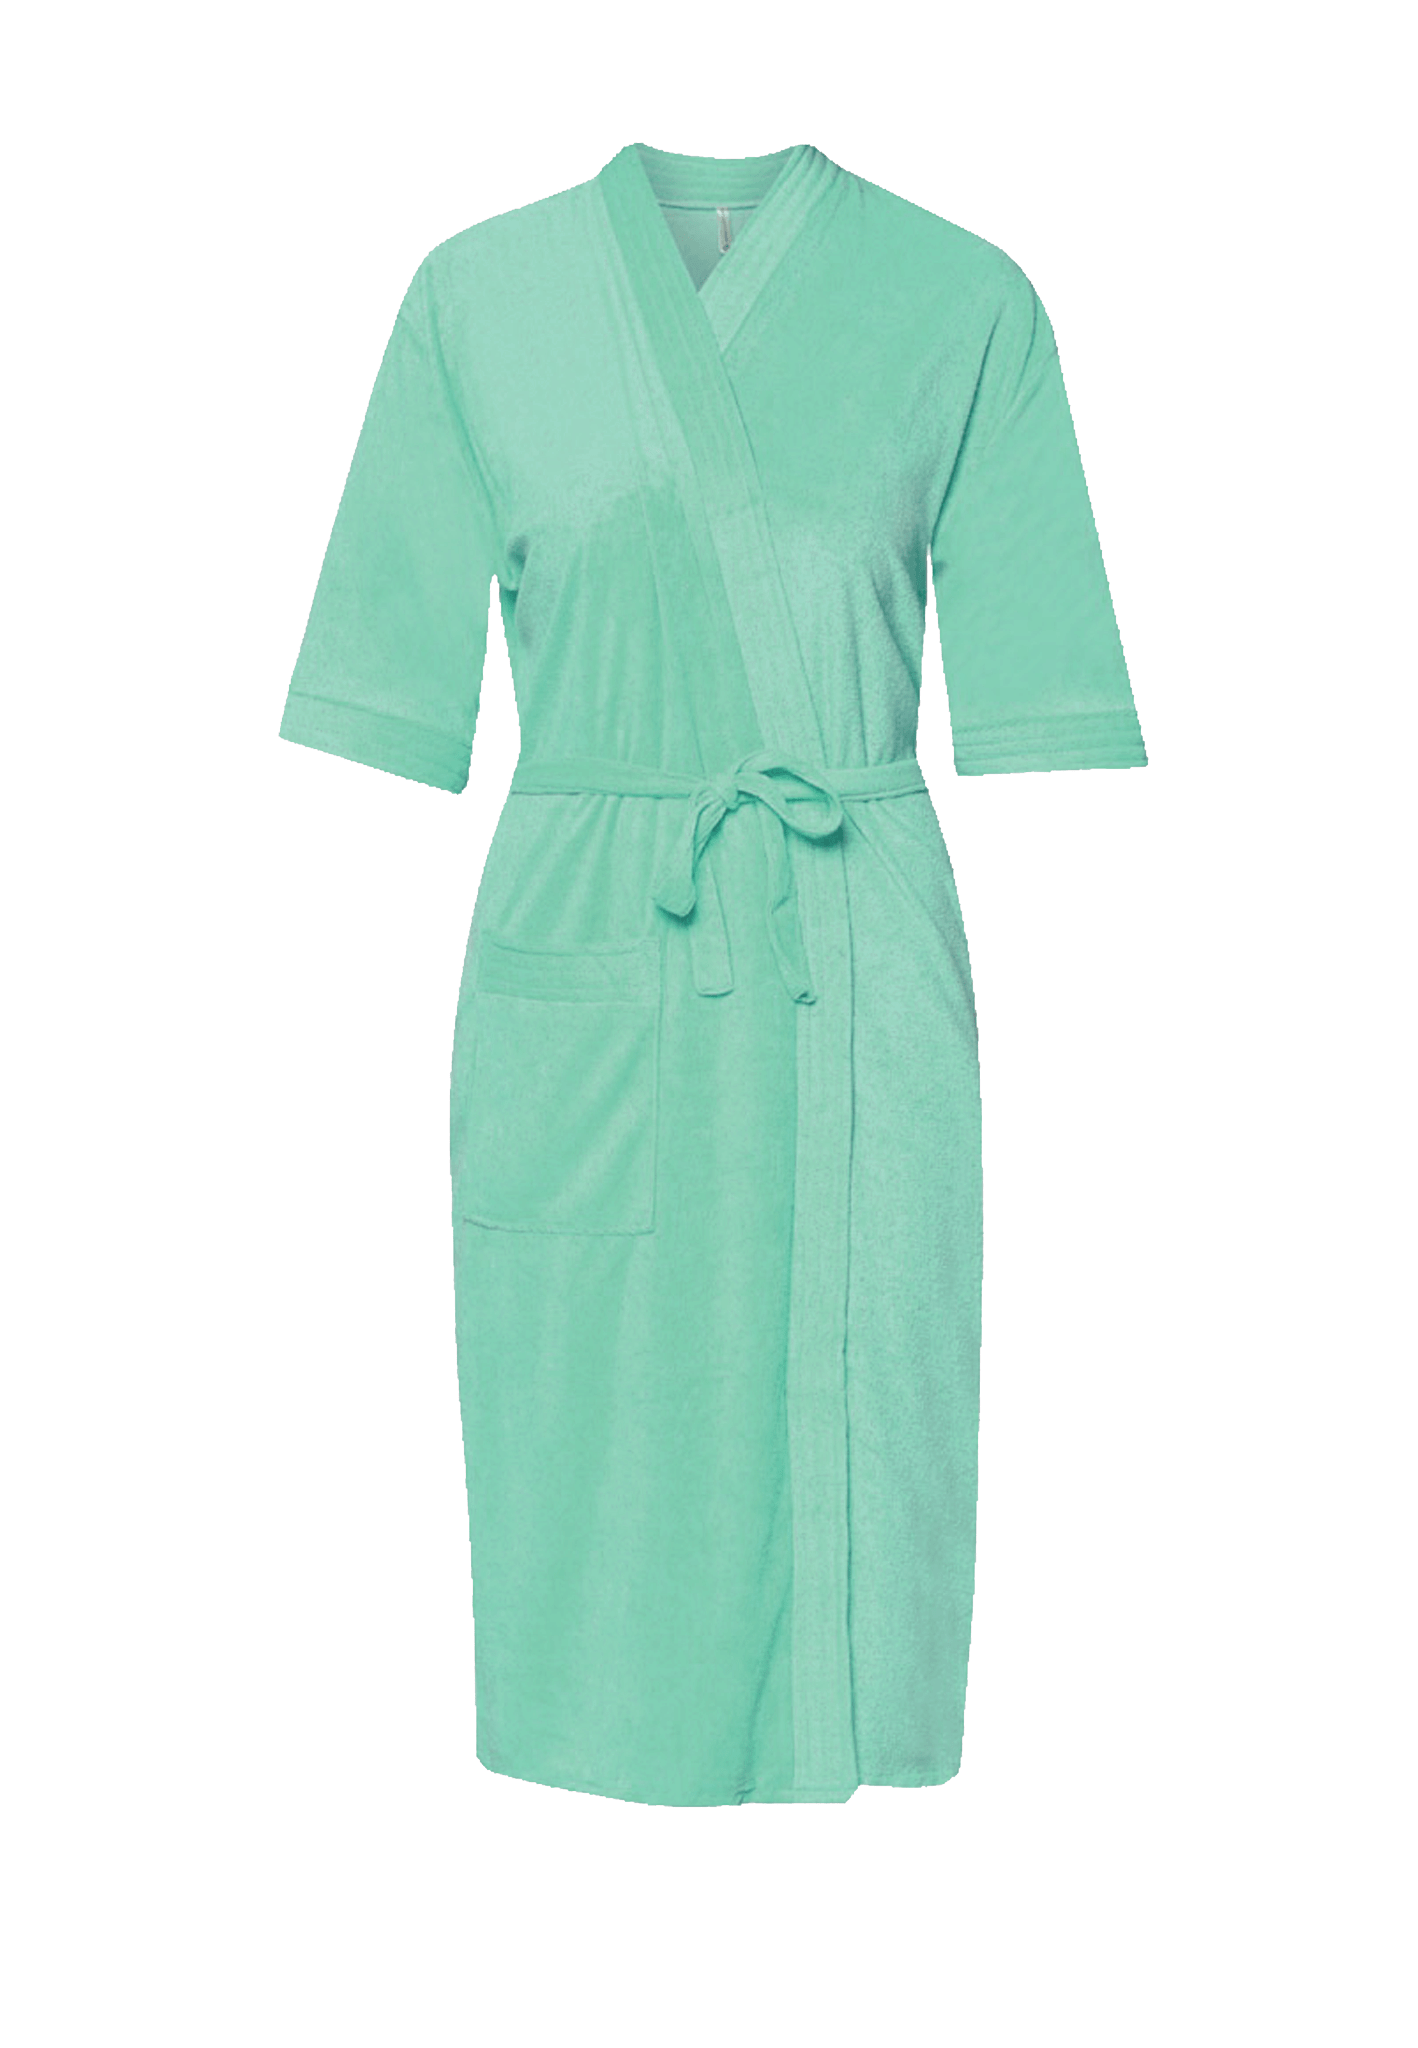 Swim Robe in Jade Green